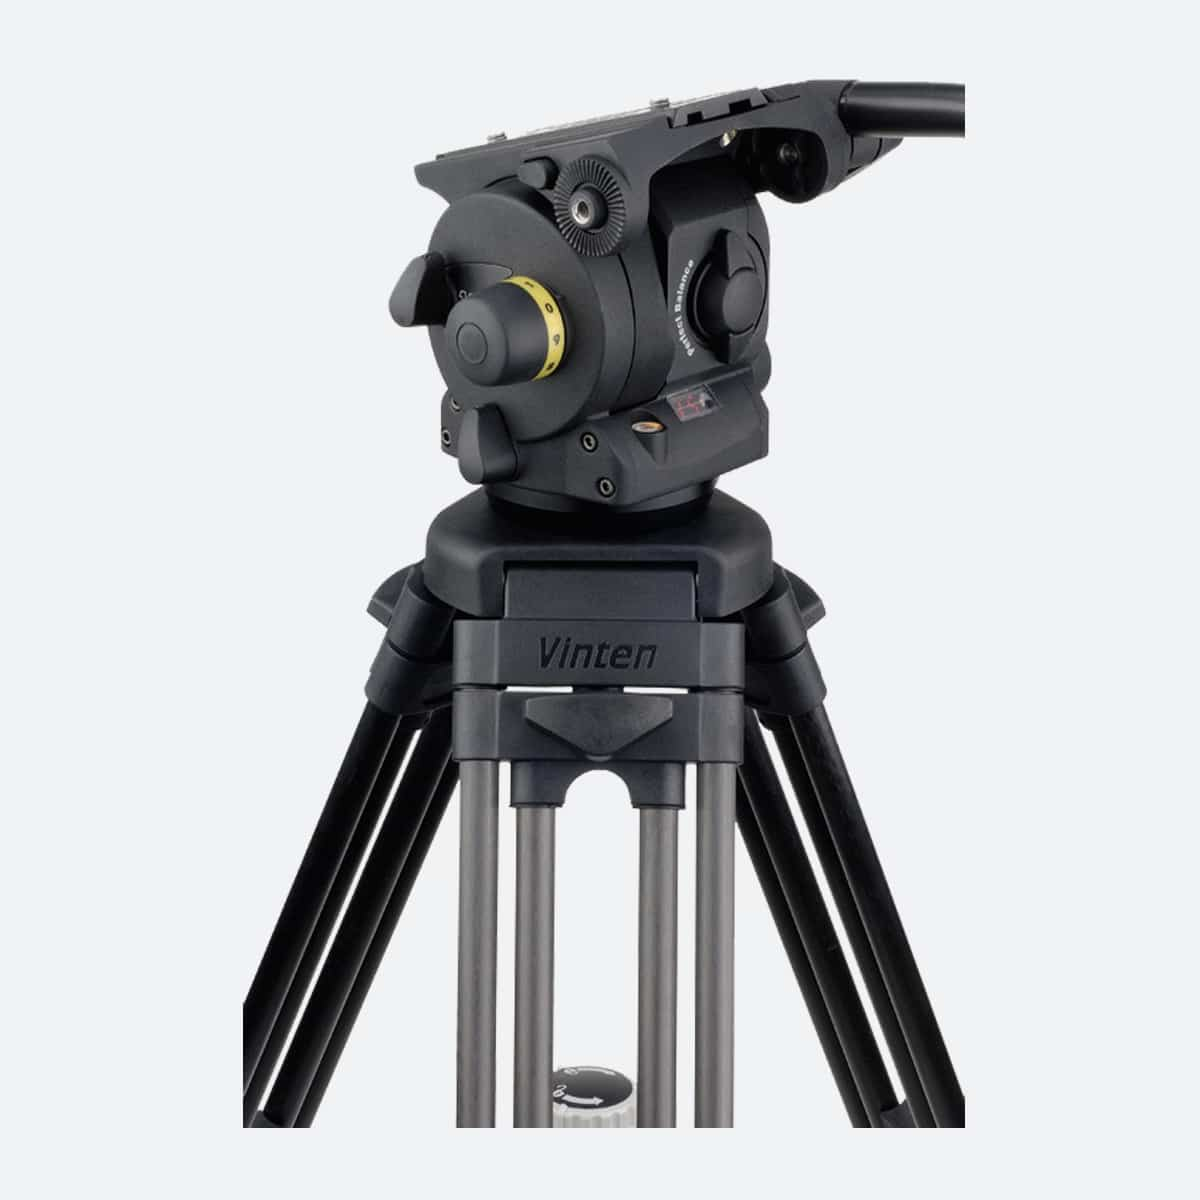 Vinten Vision 100 pan and tilt tripod head